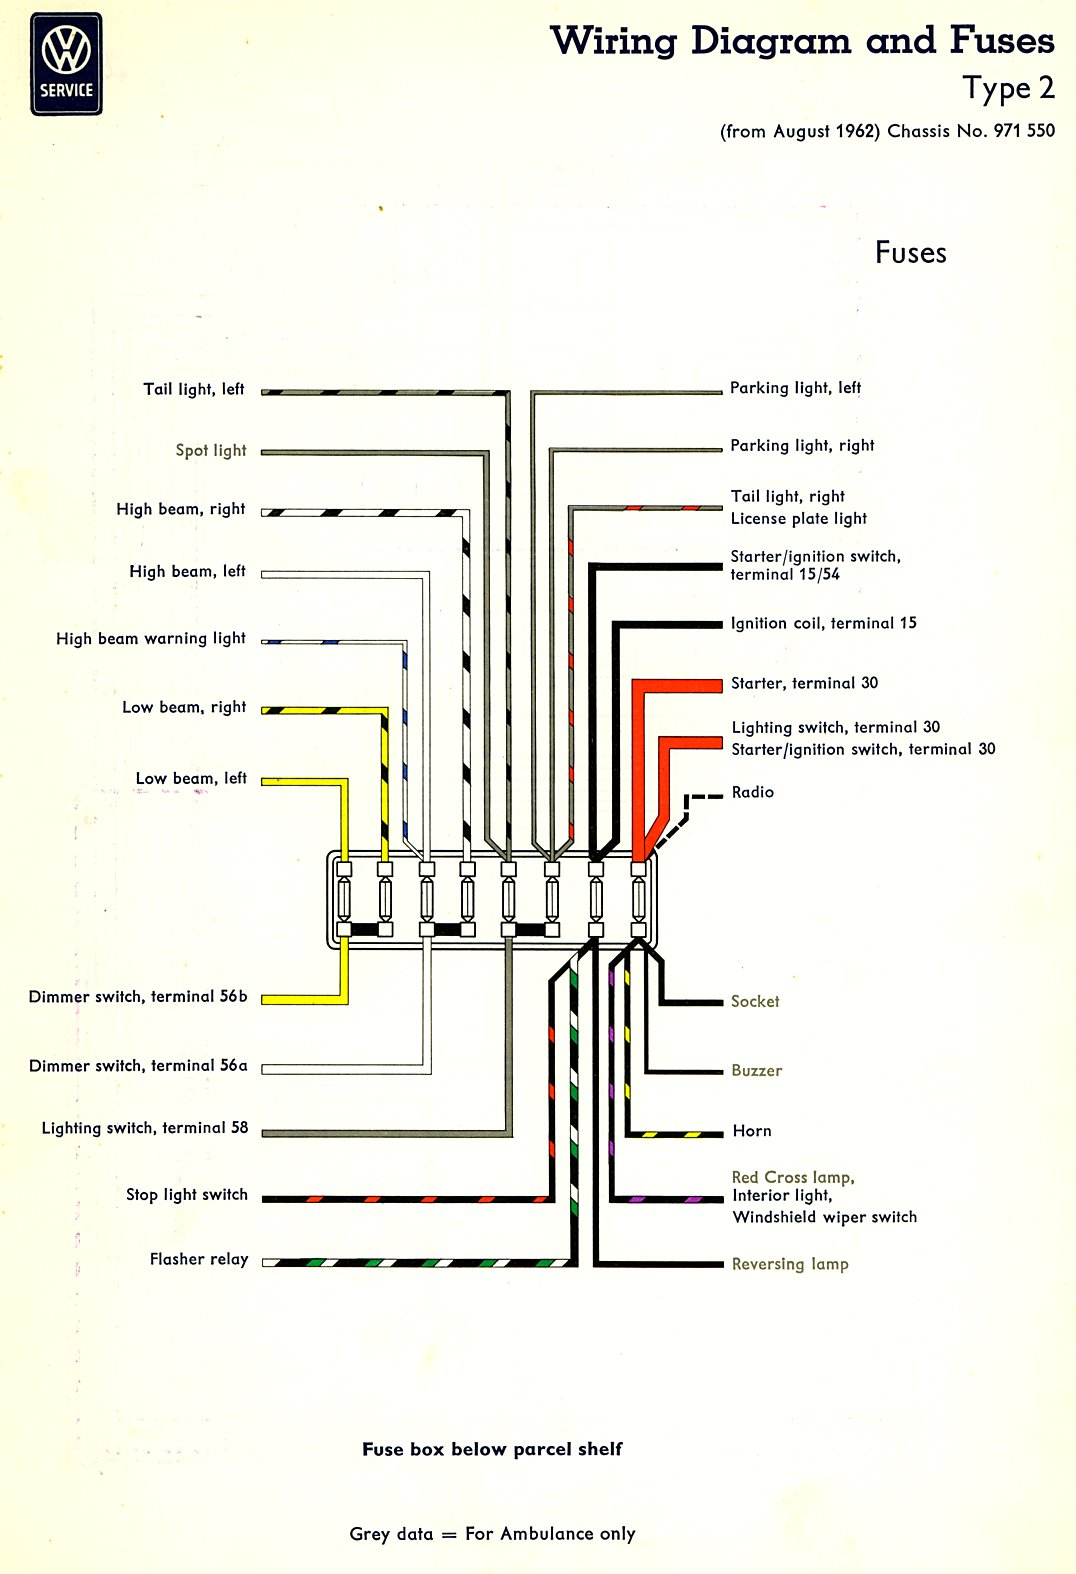 bus_63_fuses thesamba com type 2 wiring diagrams 1978 vw bus fuse box diagram at couponss.co